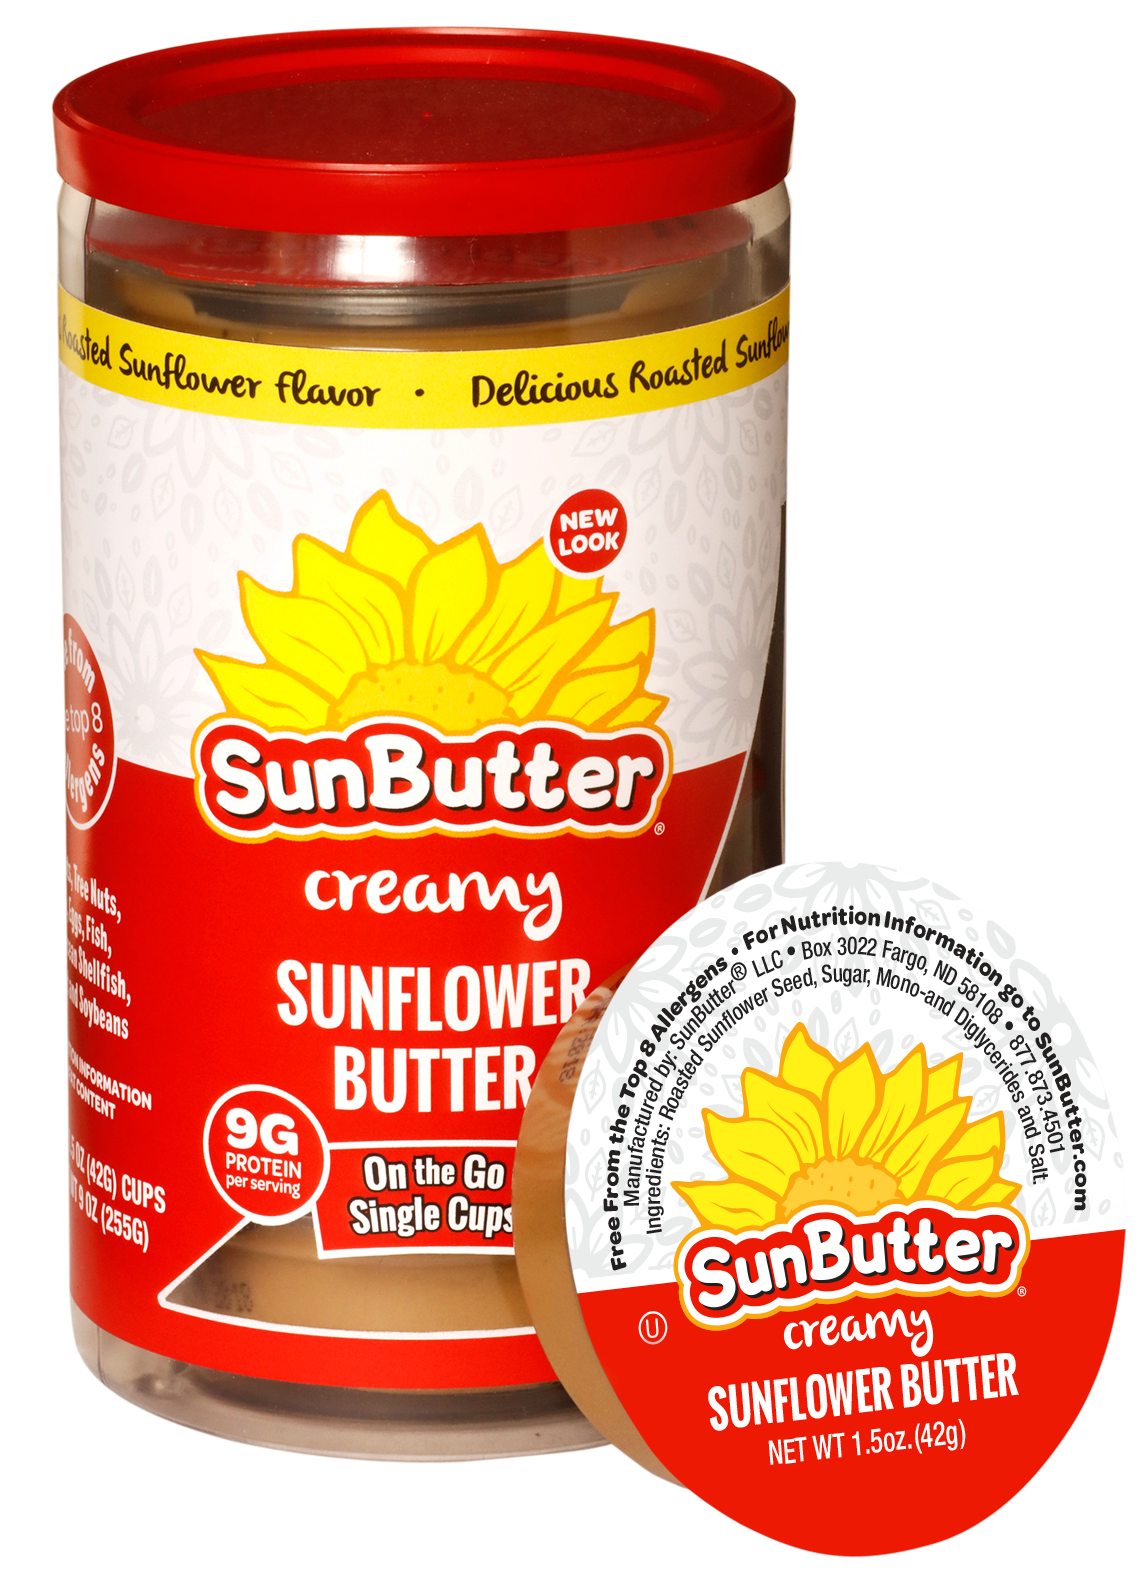 SunButter_CanisterandCup_29A2106_5x7-1.png